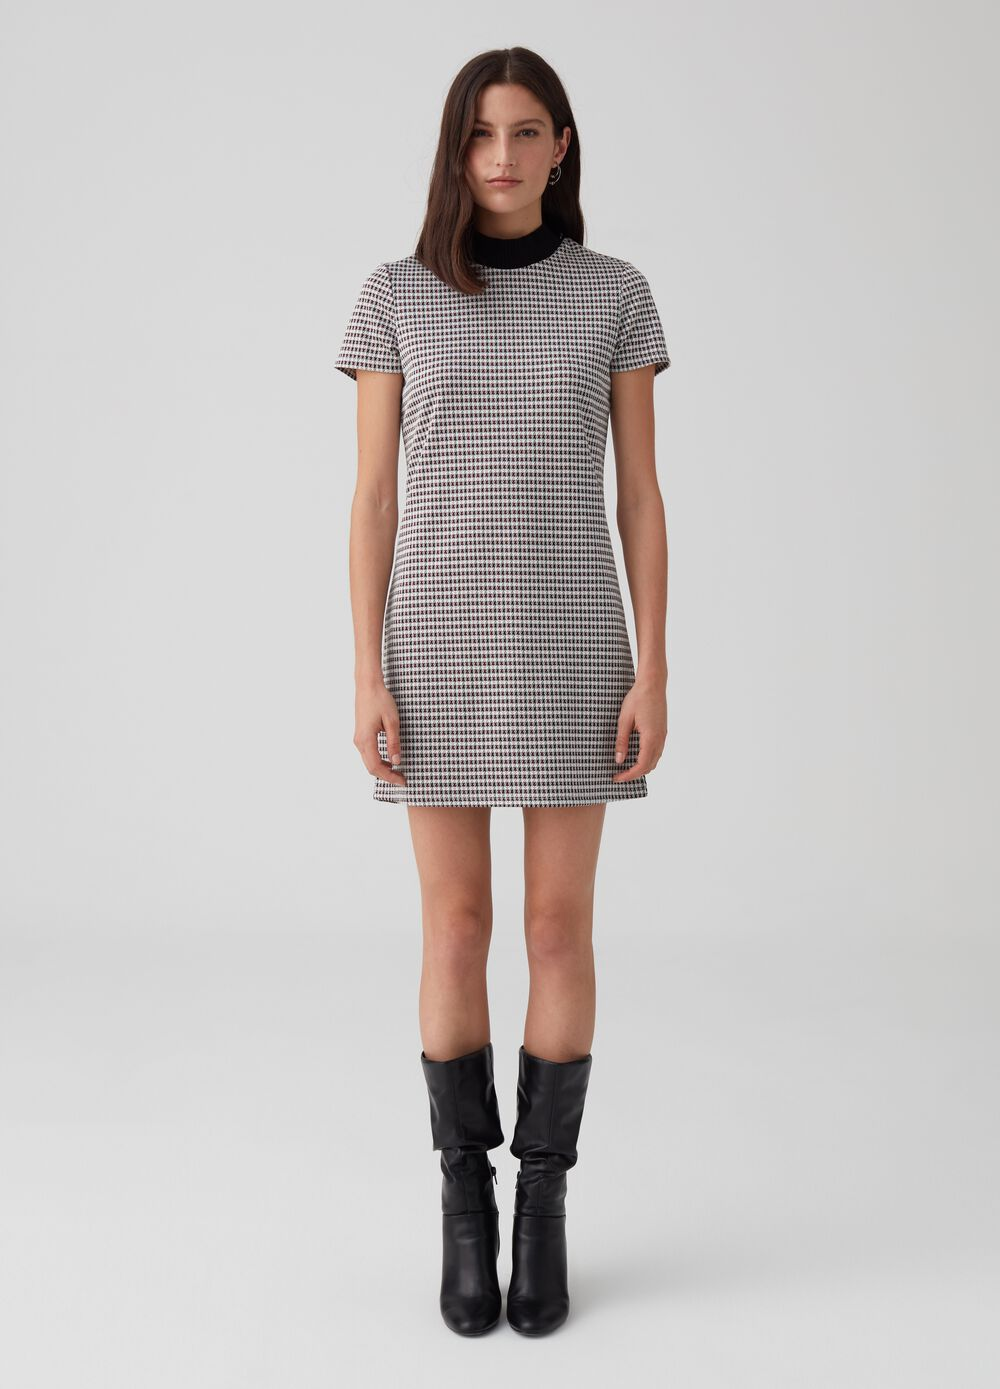 Dress with hounds' tooth pattern